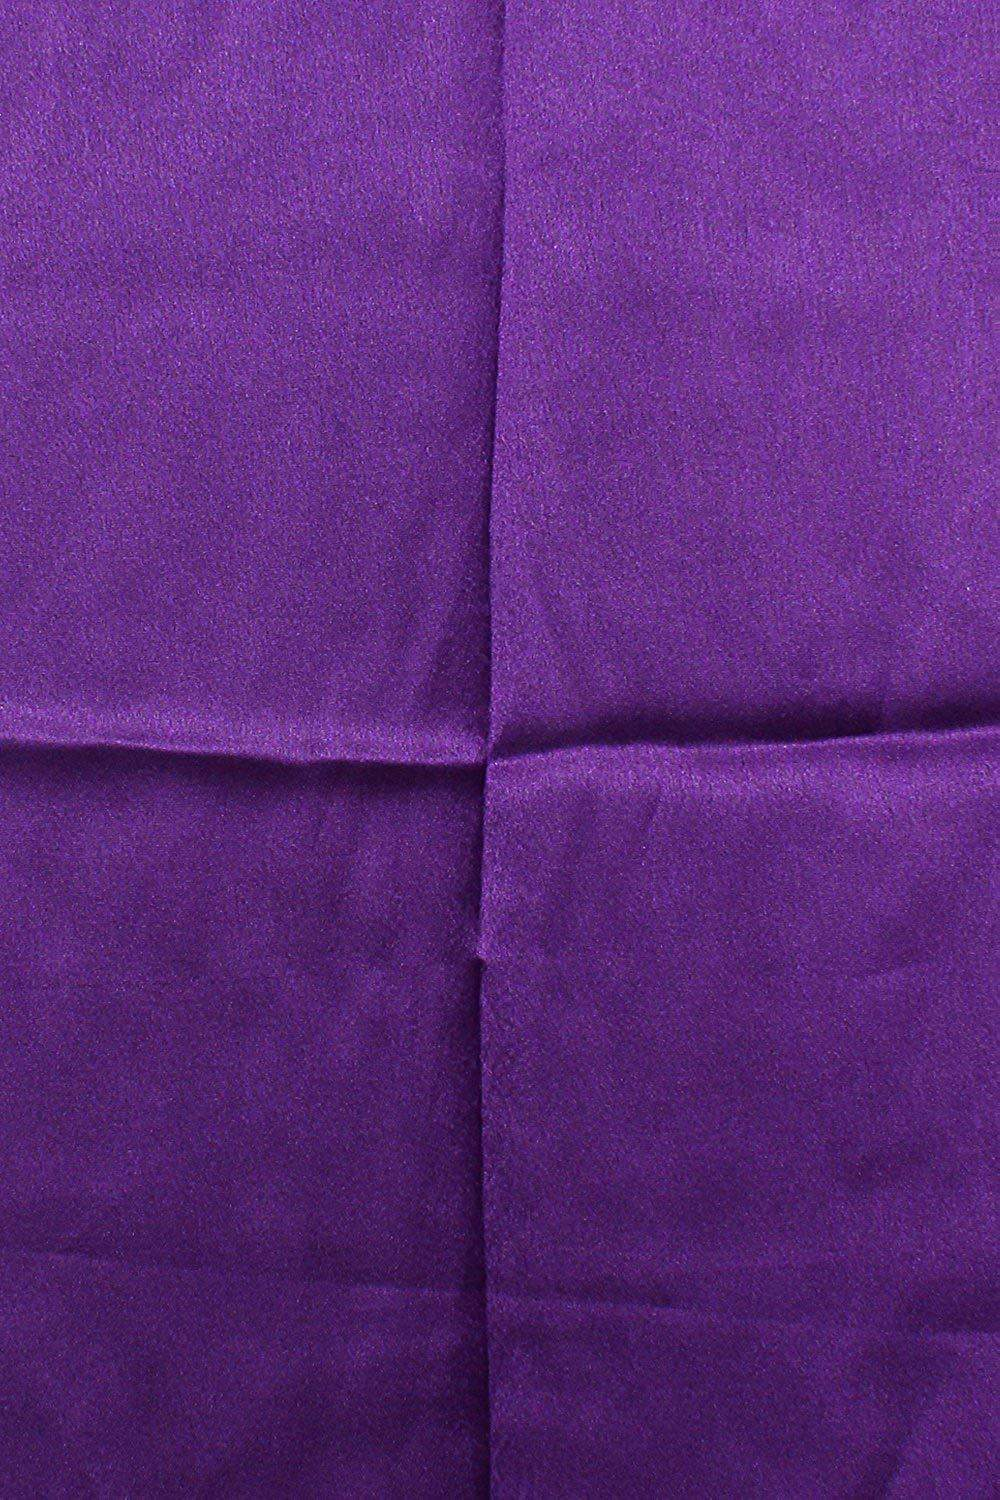 Lycra Fabric Women Solid Petticoat (Purple) - Bagaholics Gift